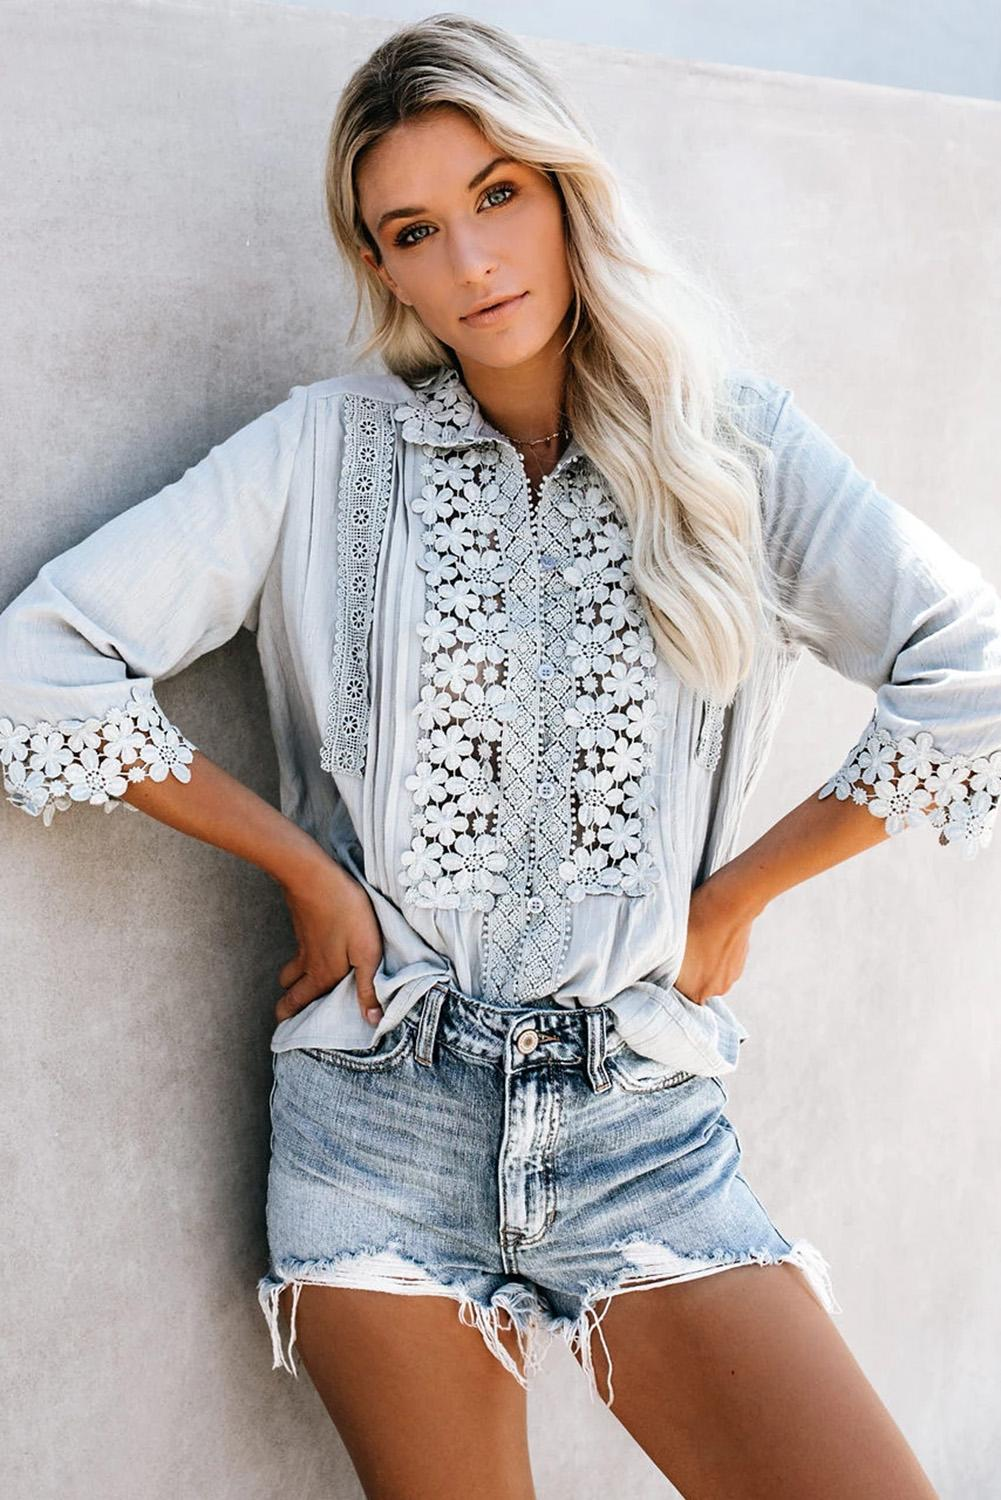 Gray Sweet Mary Crochet Lace Top Blouses & Shirts Discount Designer Fashion Clothes Shoes Bags Women Men Kids Children Black Owned Business